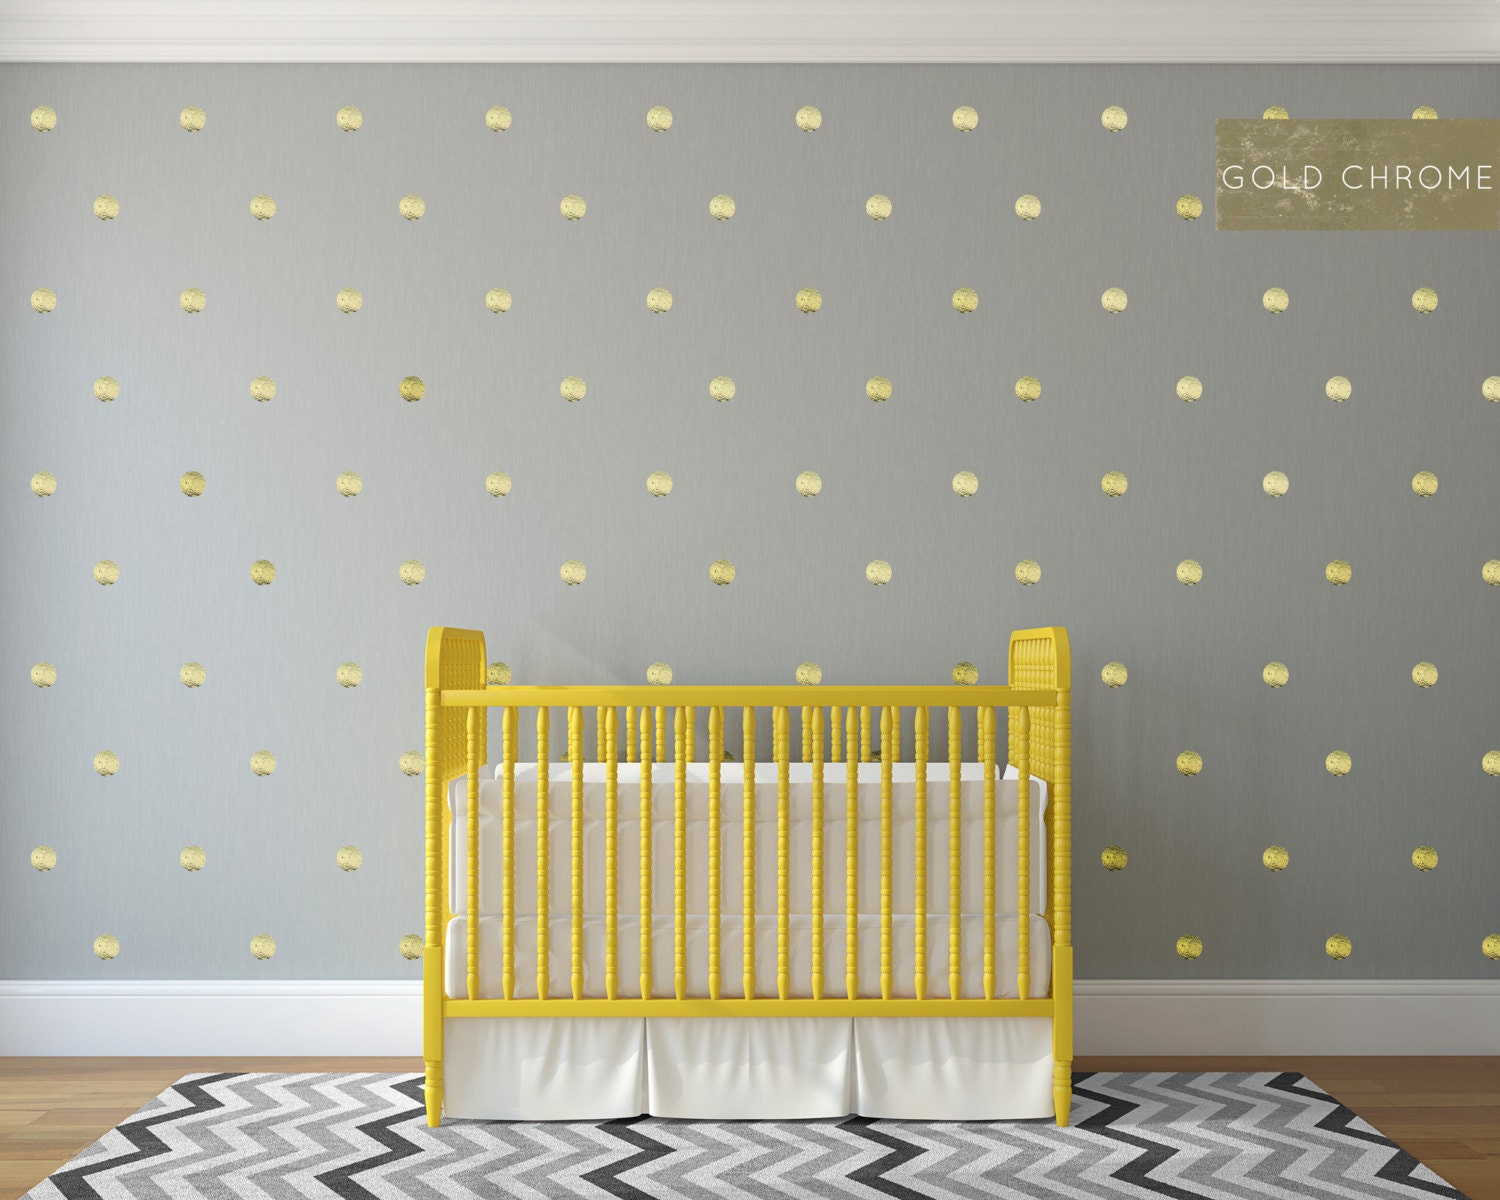 50 3-inch Gold Polka Dot Pattern Chrome Gold Foil Wall Decal